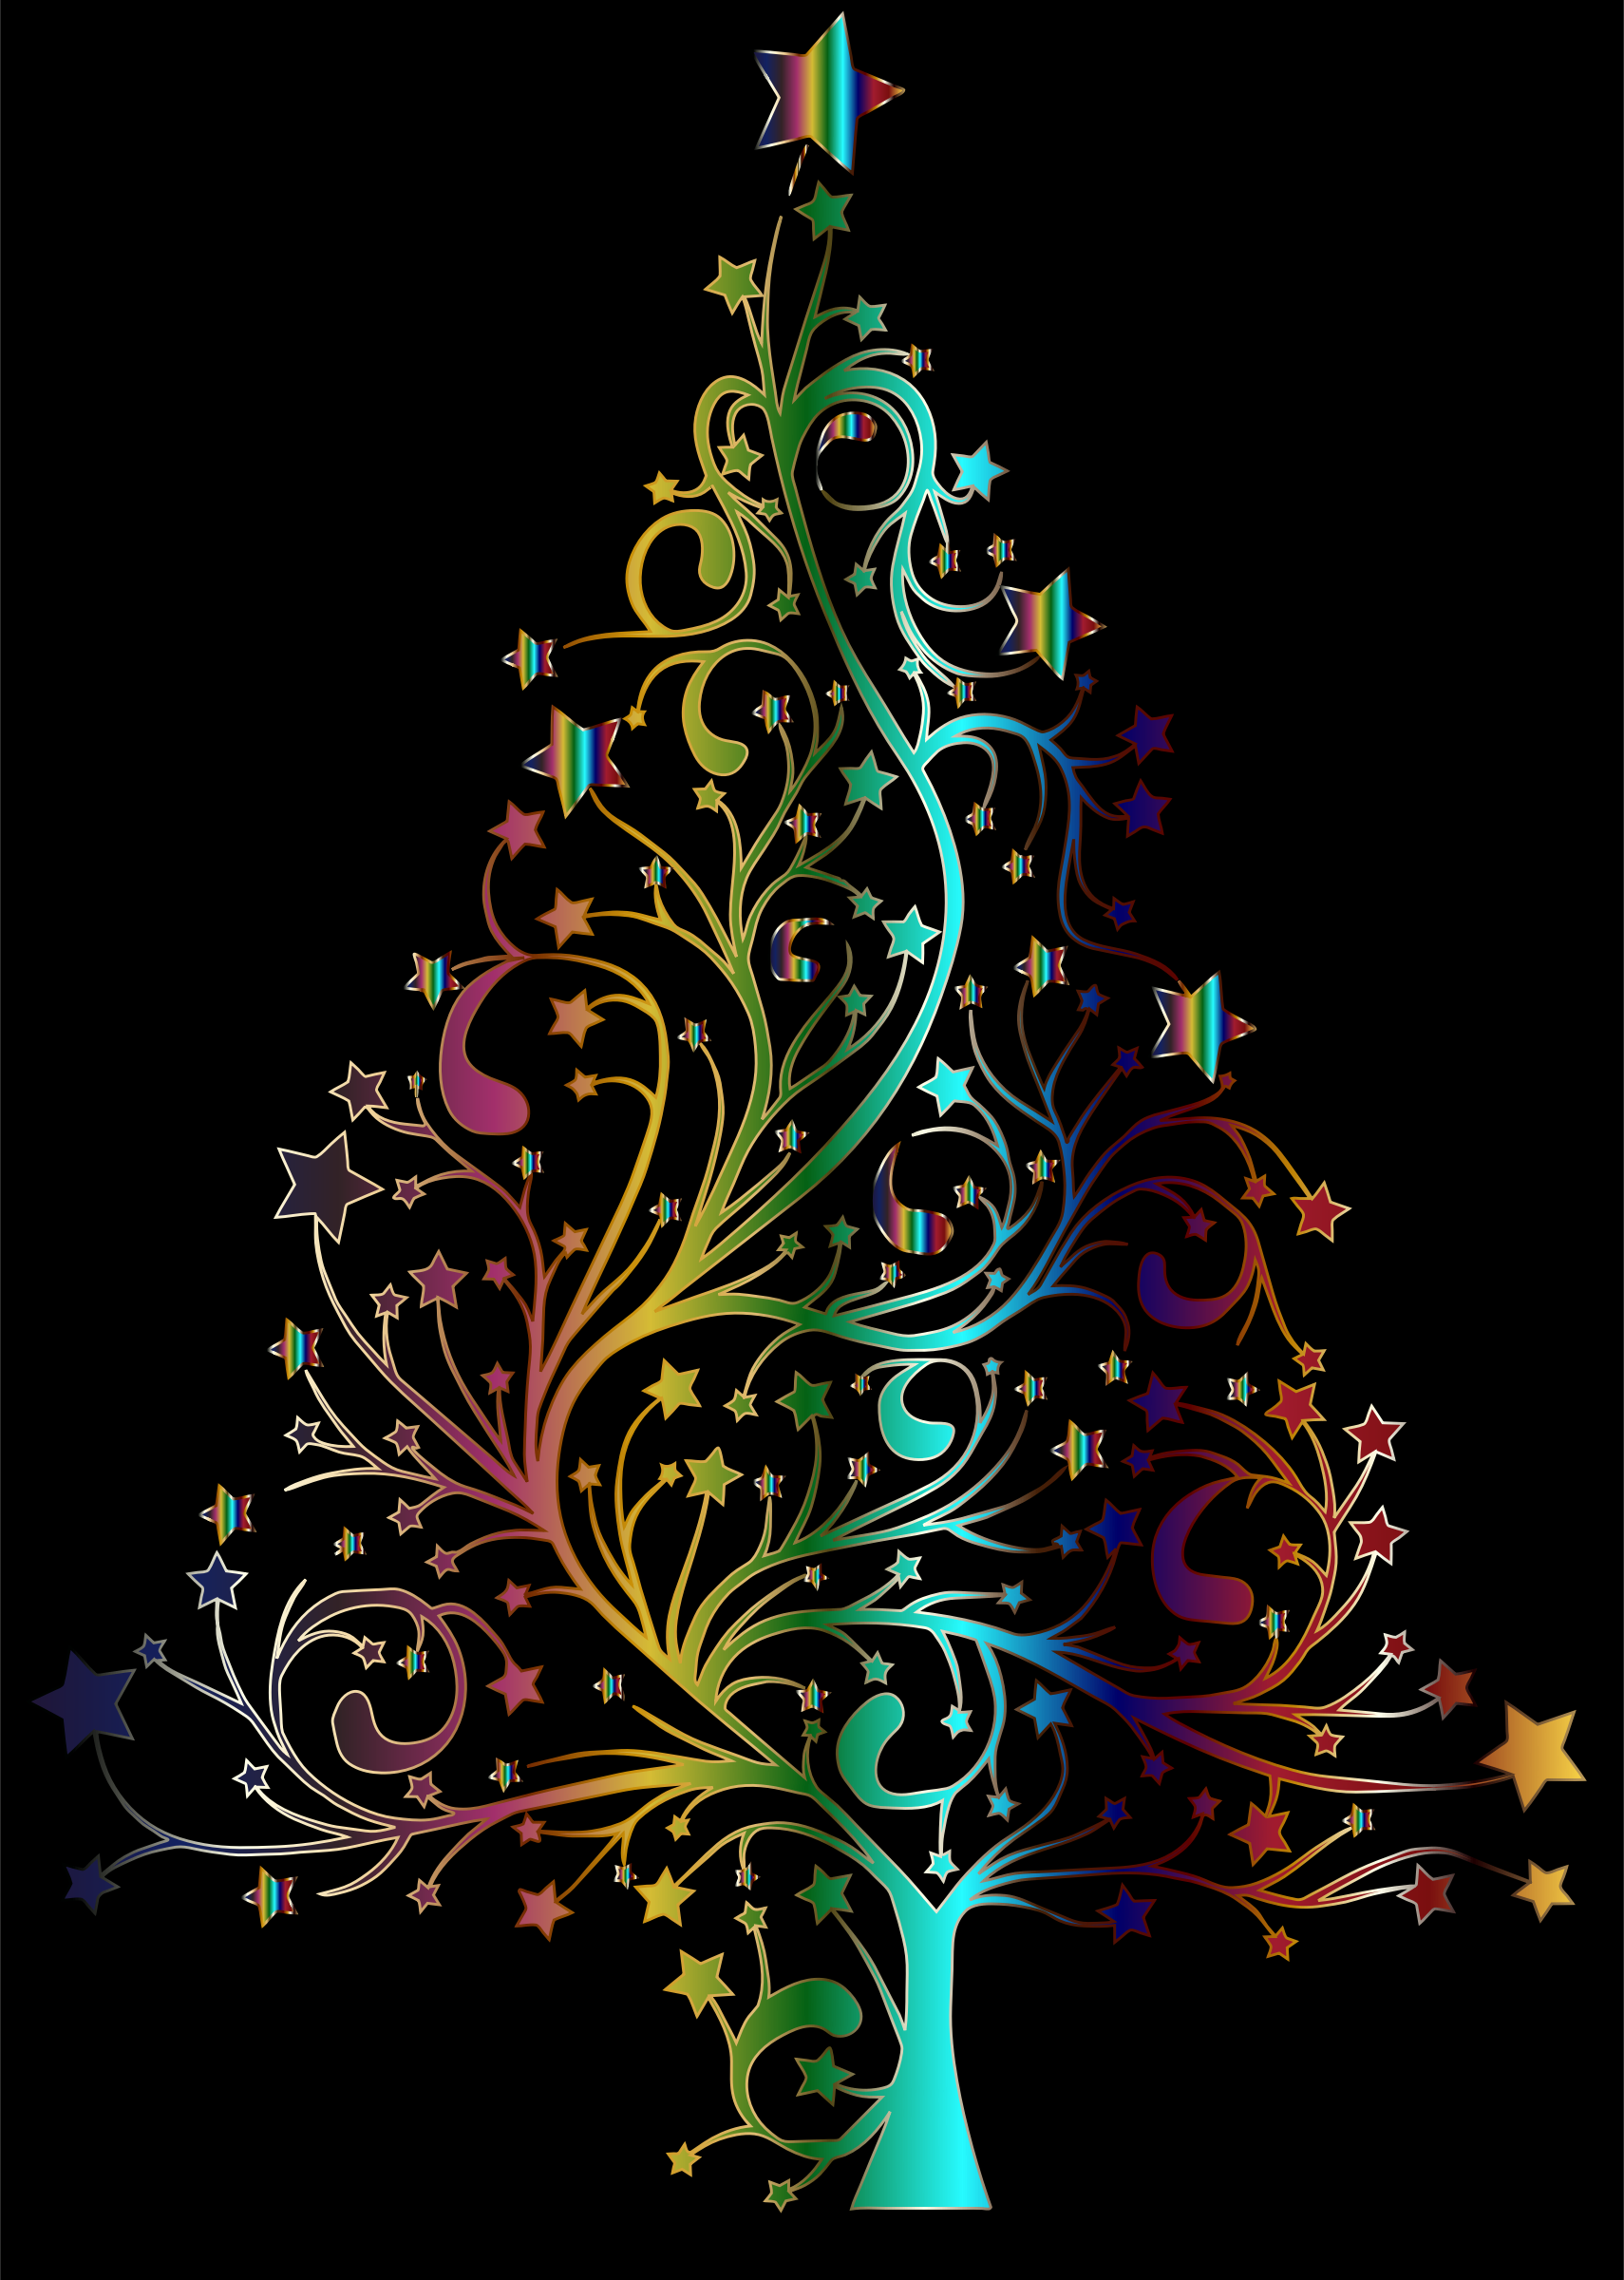 Starry Christmas Tree Prismatic by GDJ